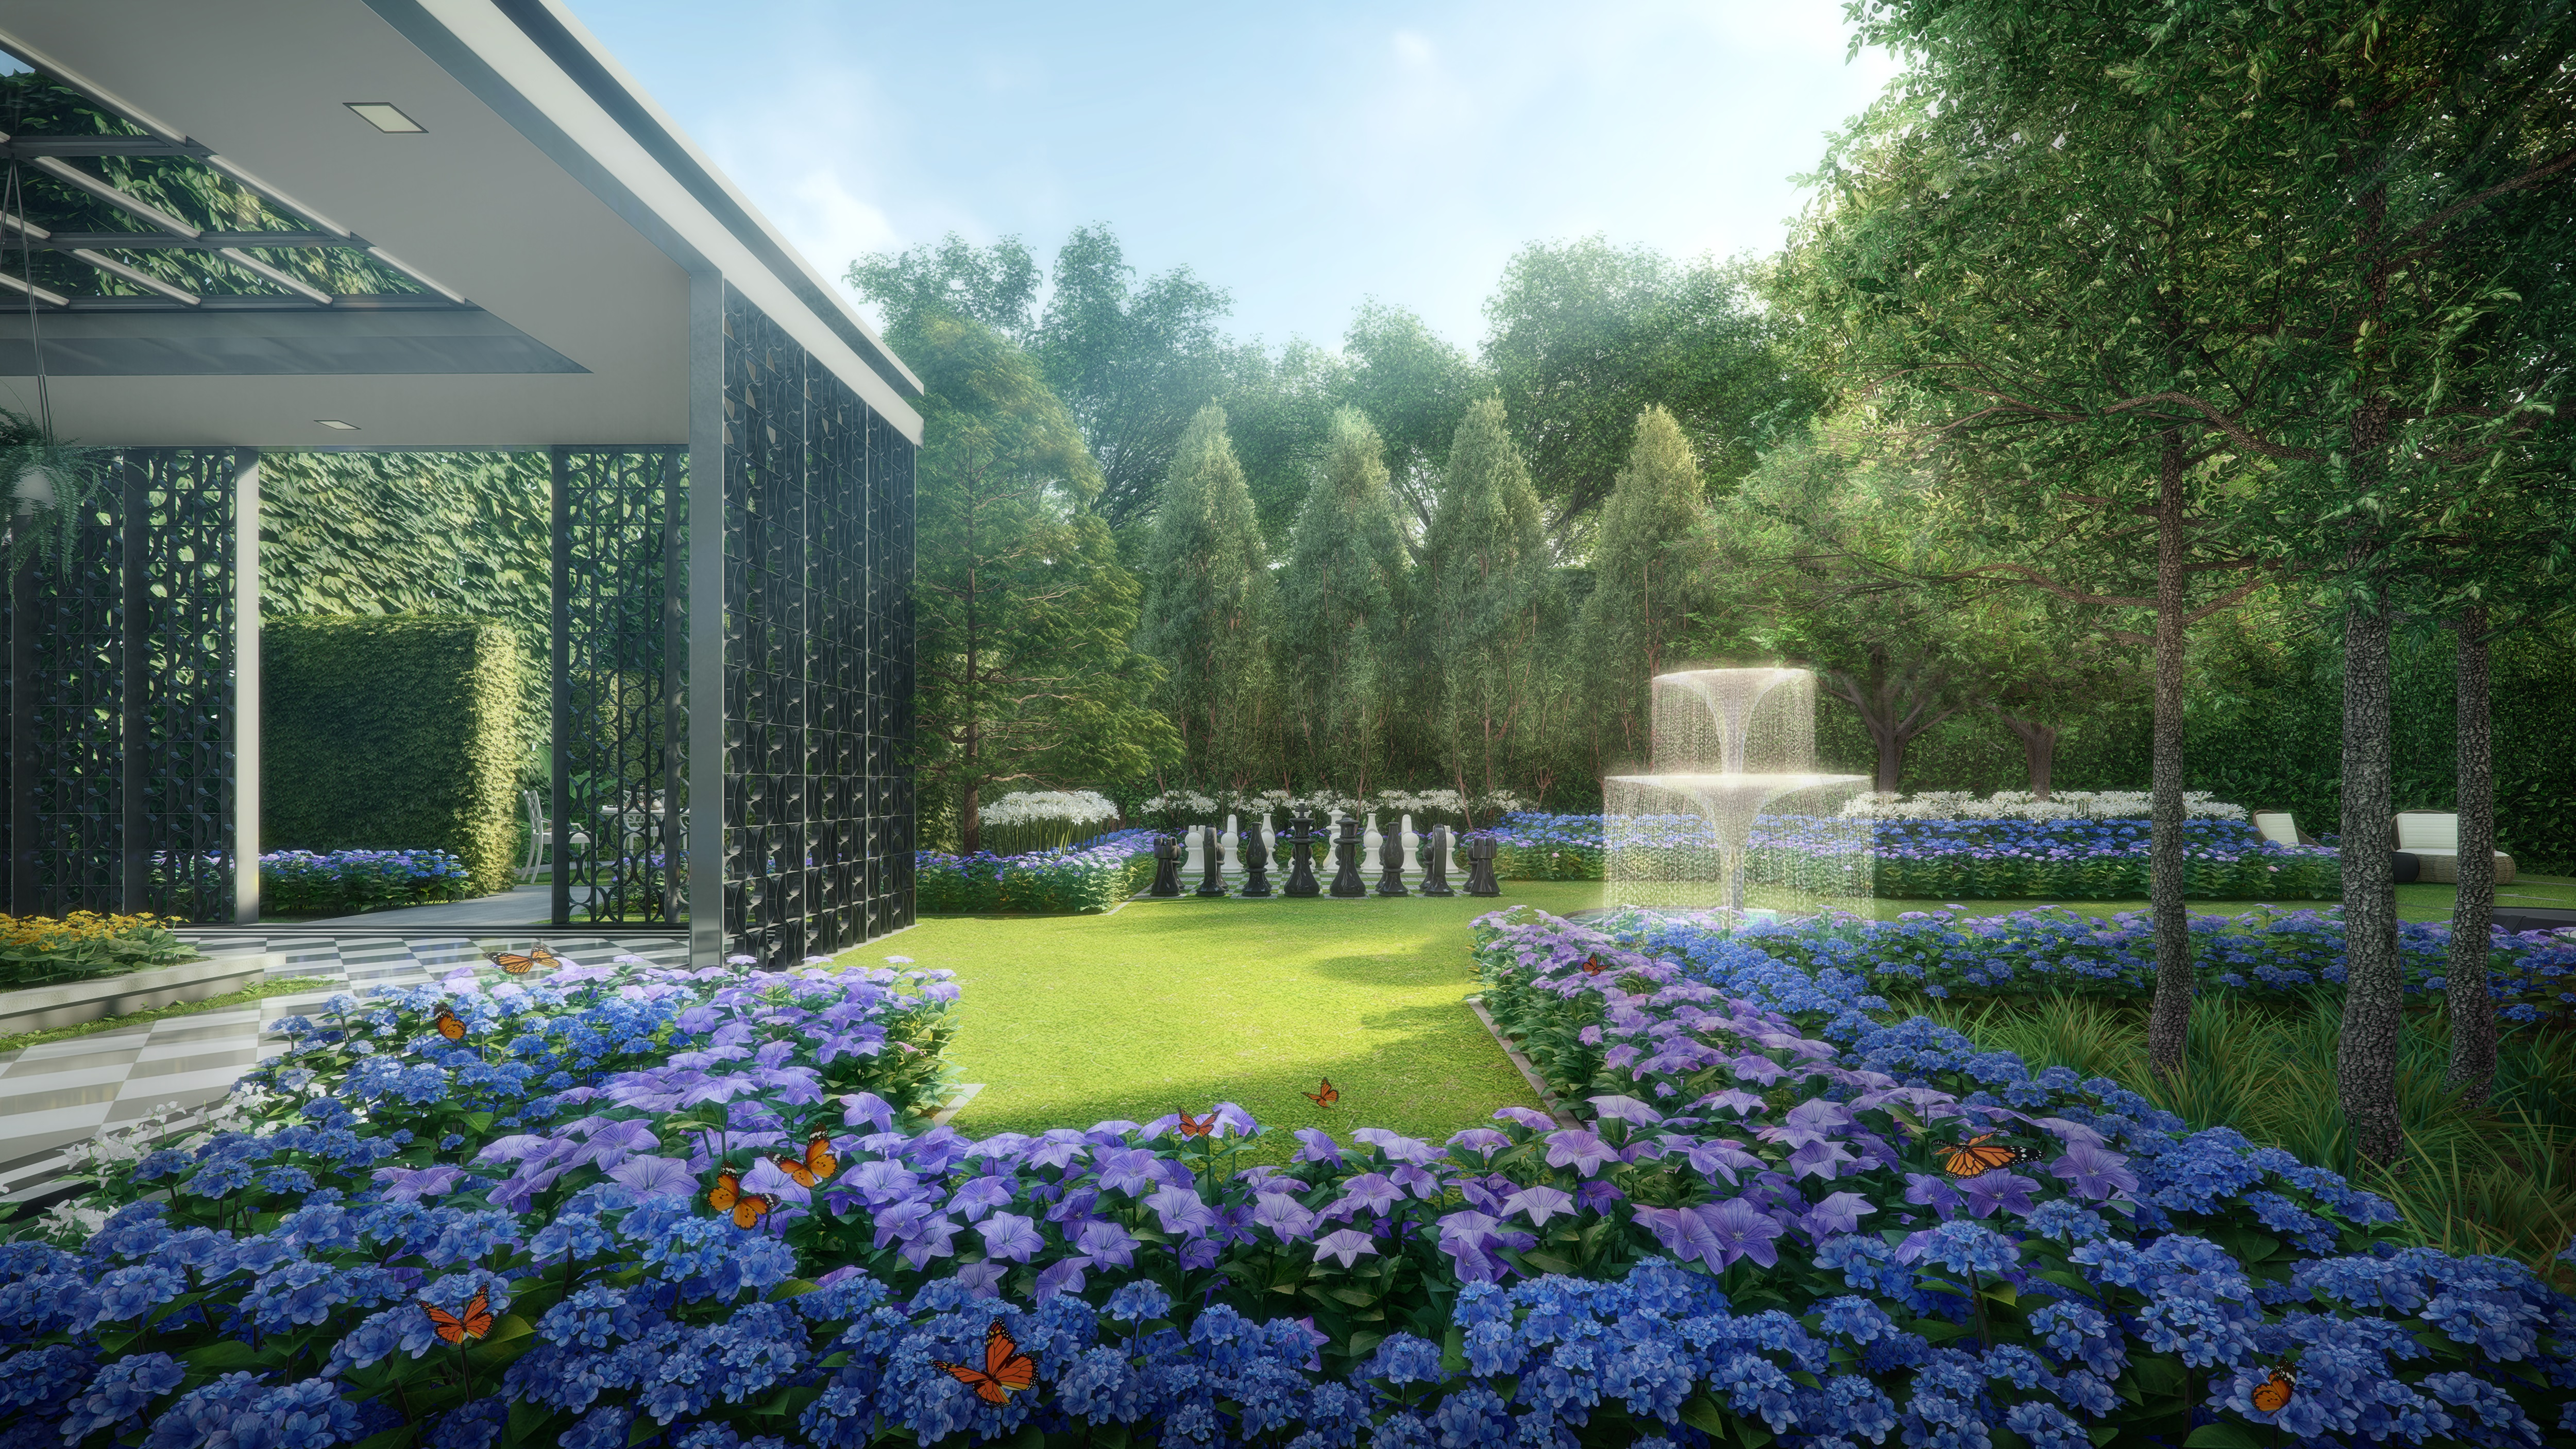 PARK COLONIAL - At the flower garden at Park Colonial, residents can enjoy their afternoon tea